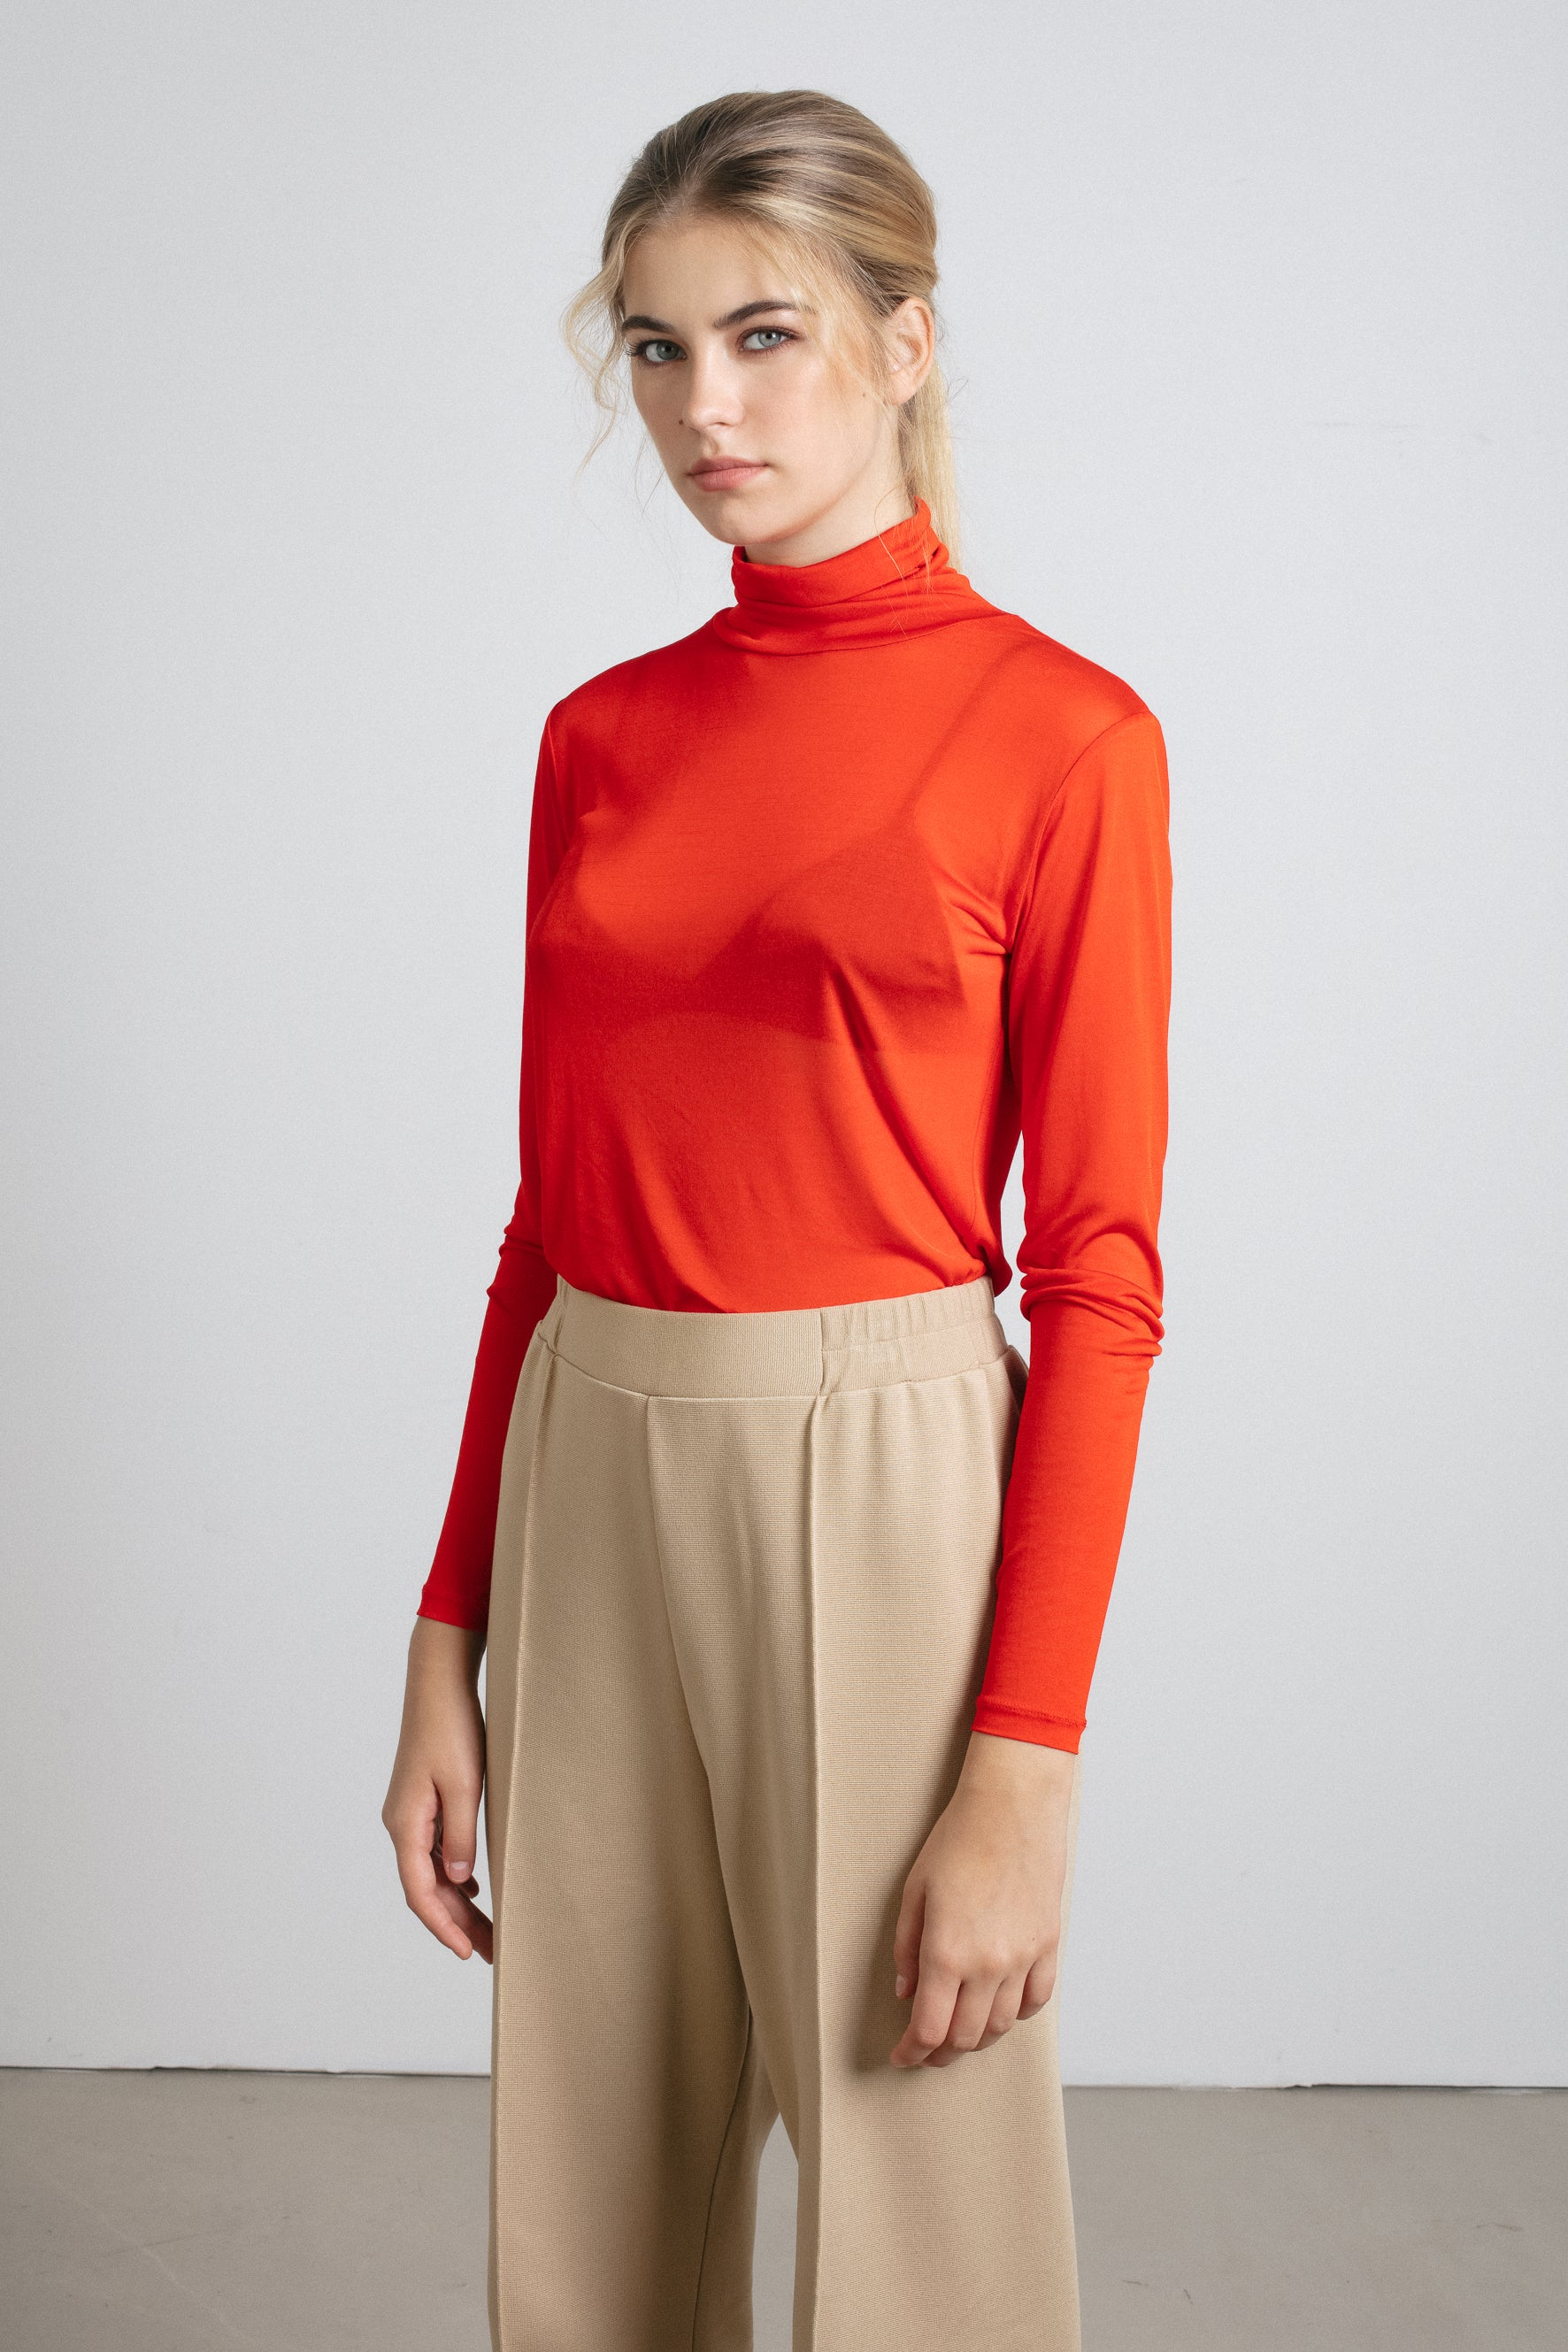 Red sheer turtleneck